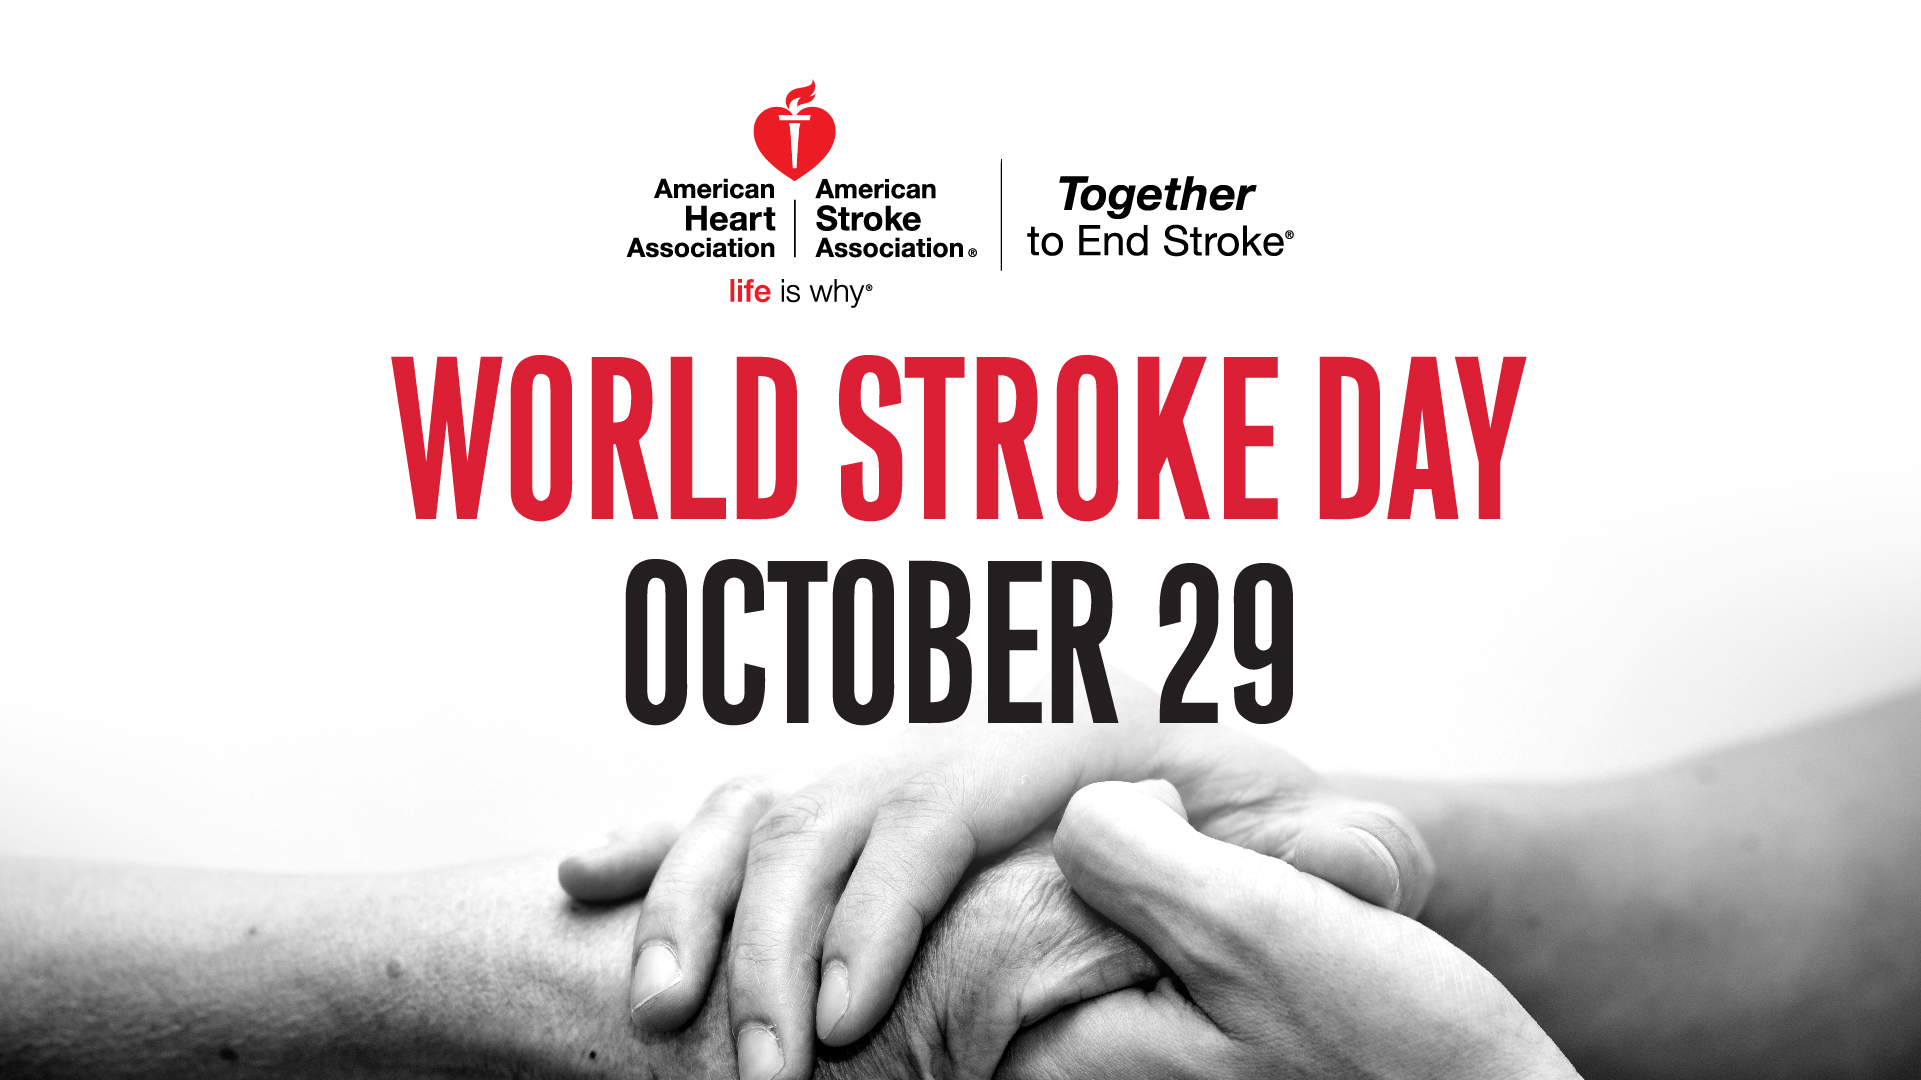 World Stroke Day - 29 October